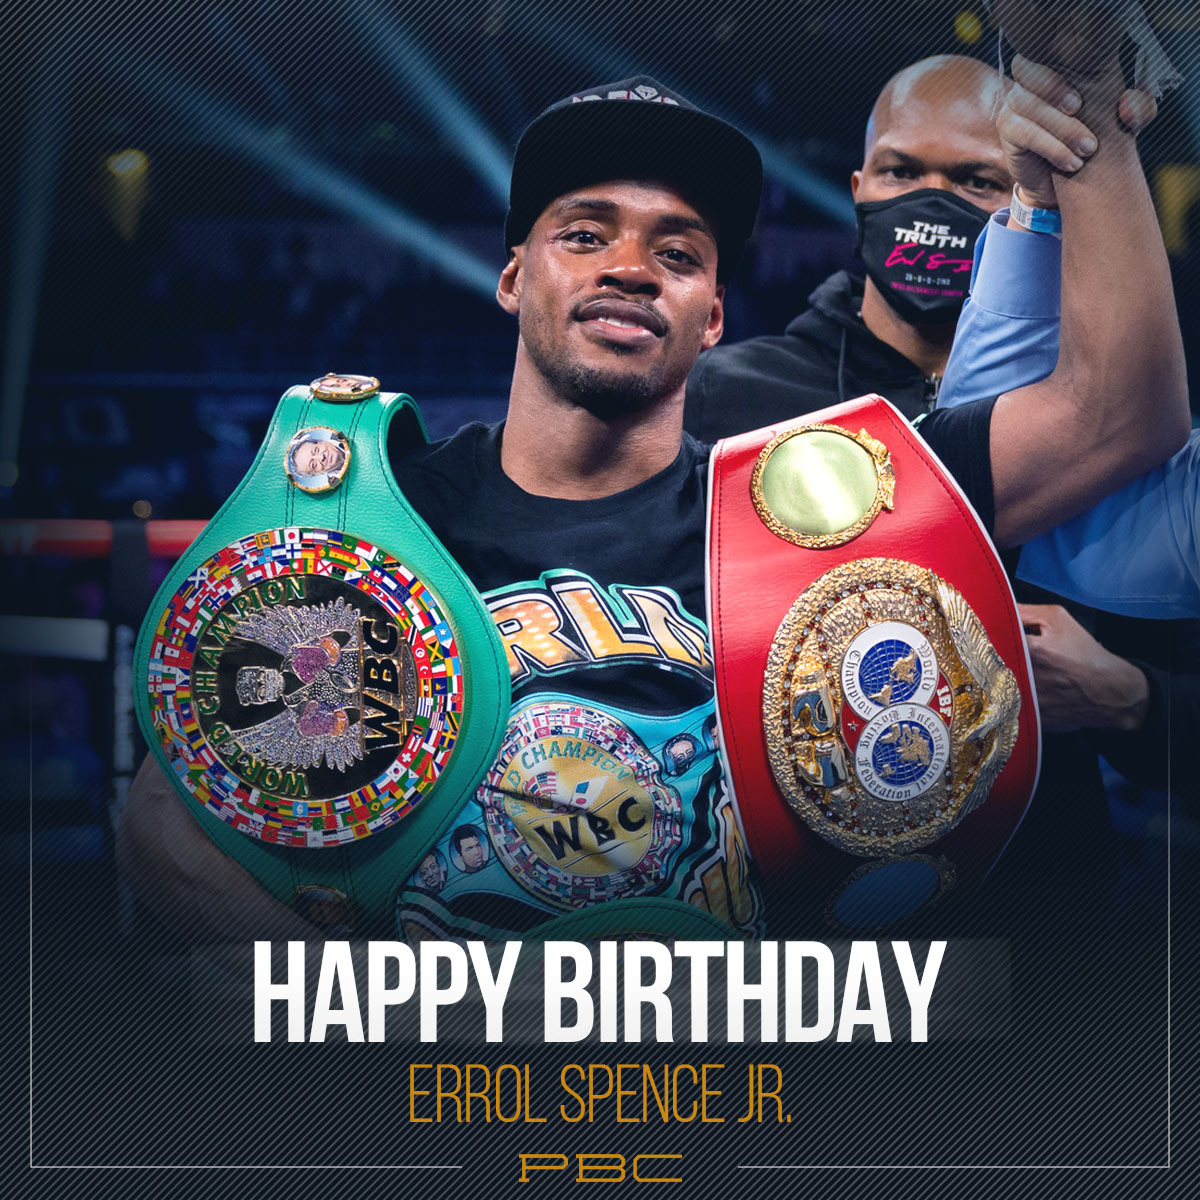 LIKE & RETWEET to wish Unified World Welterweight Champion @ErrolSpenceJr a Happy Birthday! #TeamSpence #PBCBirthdays